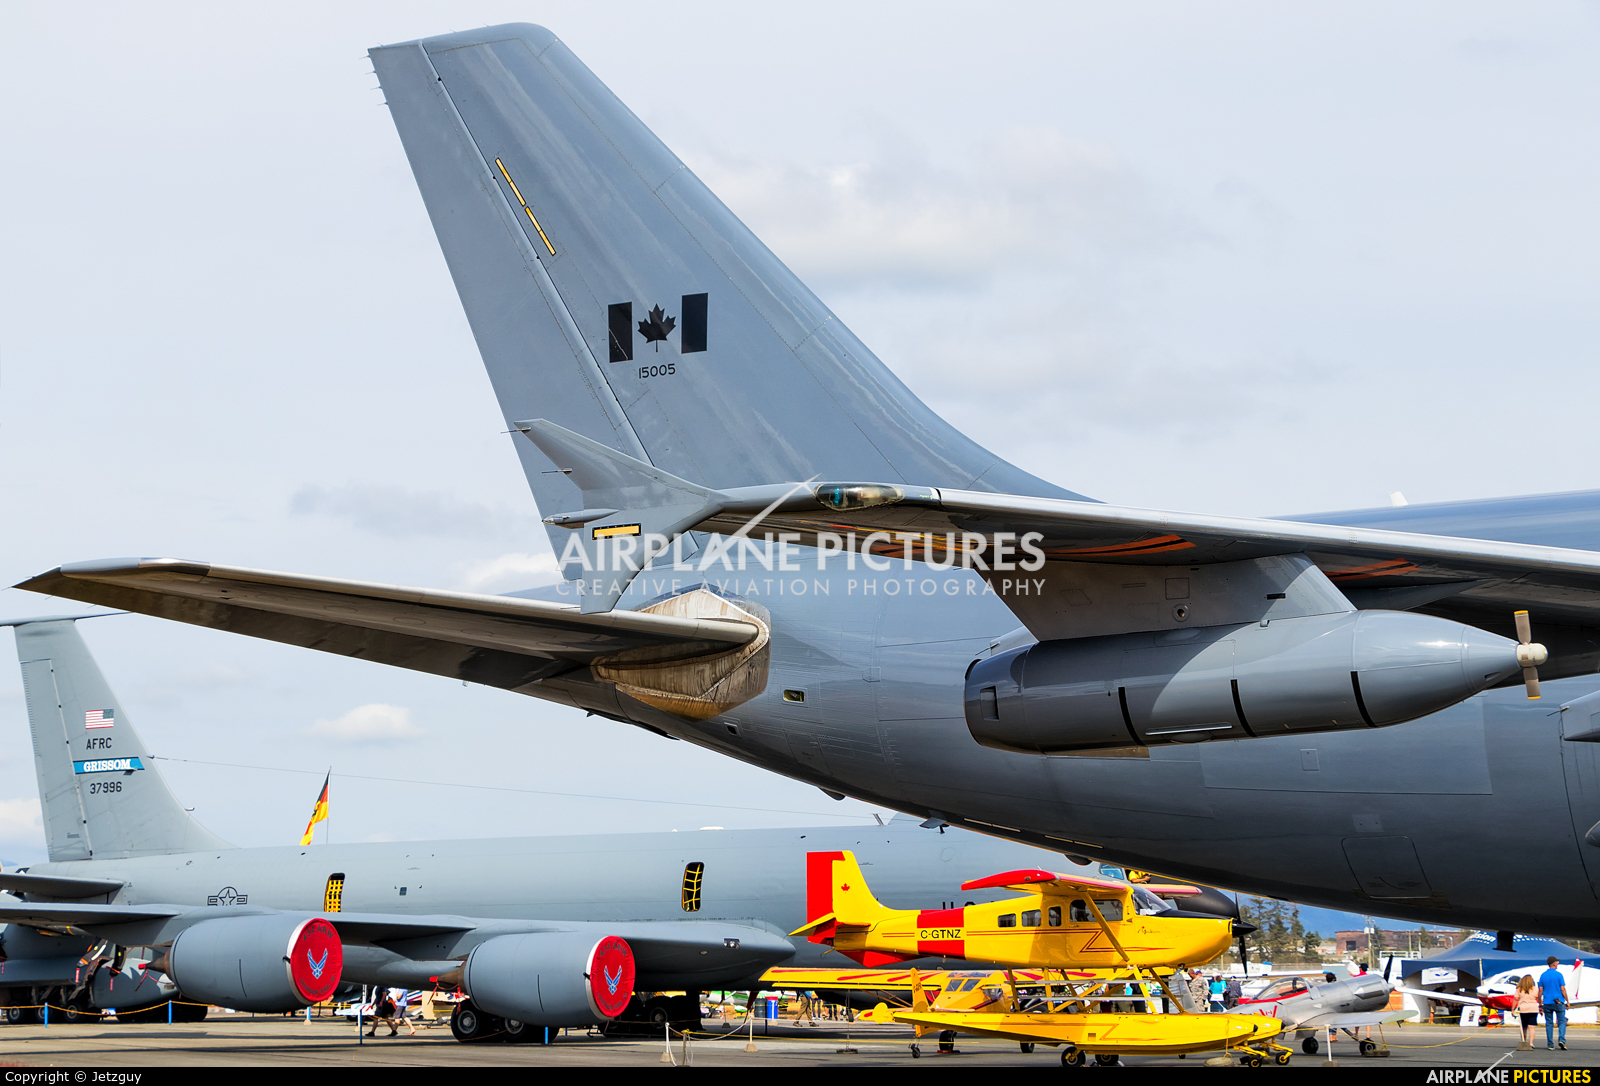 Canada - Air Force 15005 aircraft at Abbotsford, BC